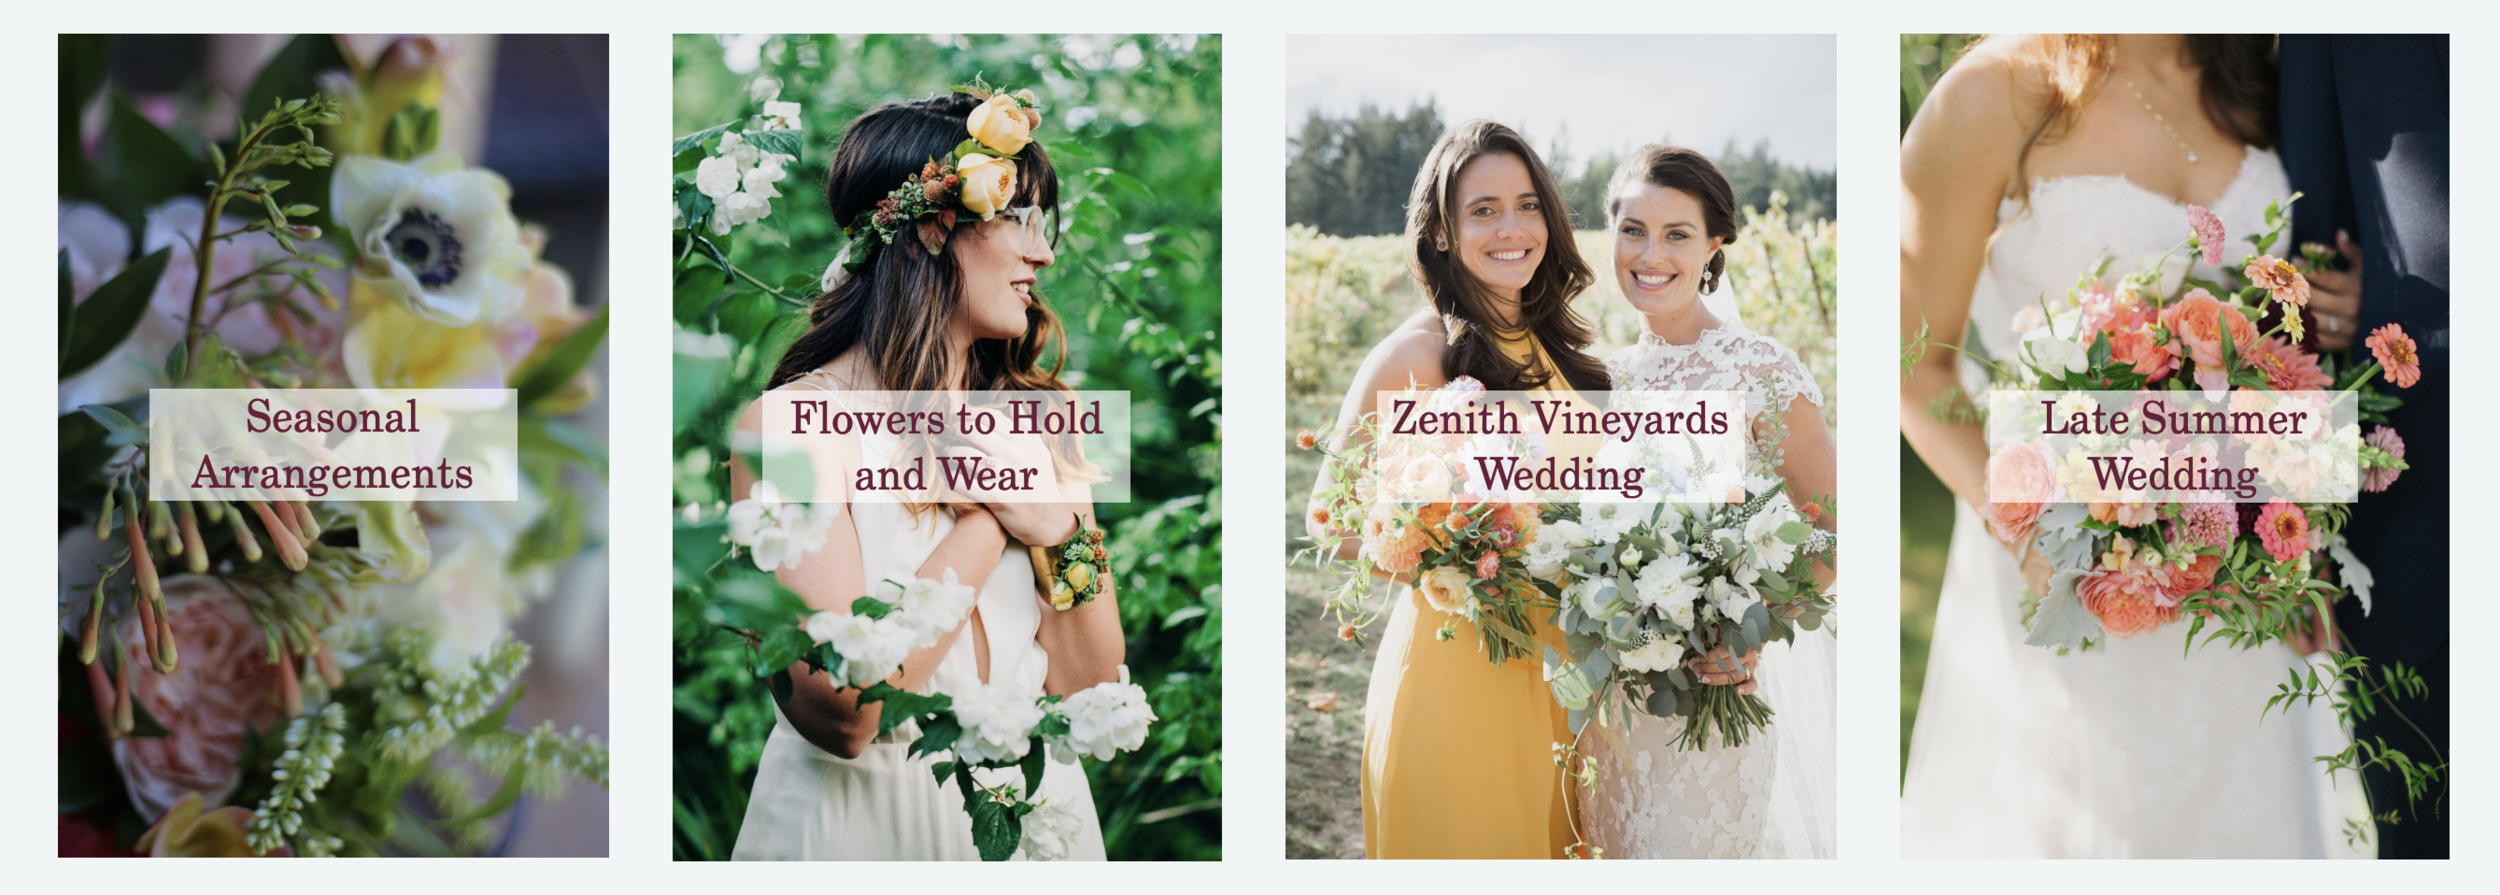 Squarespace Gallery Example - Florist's Website